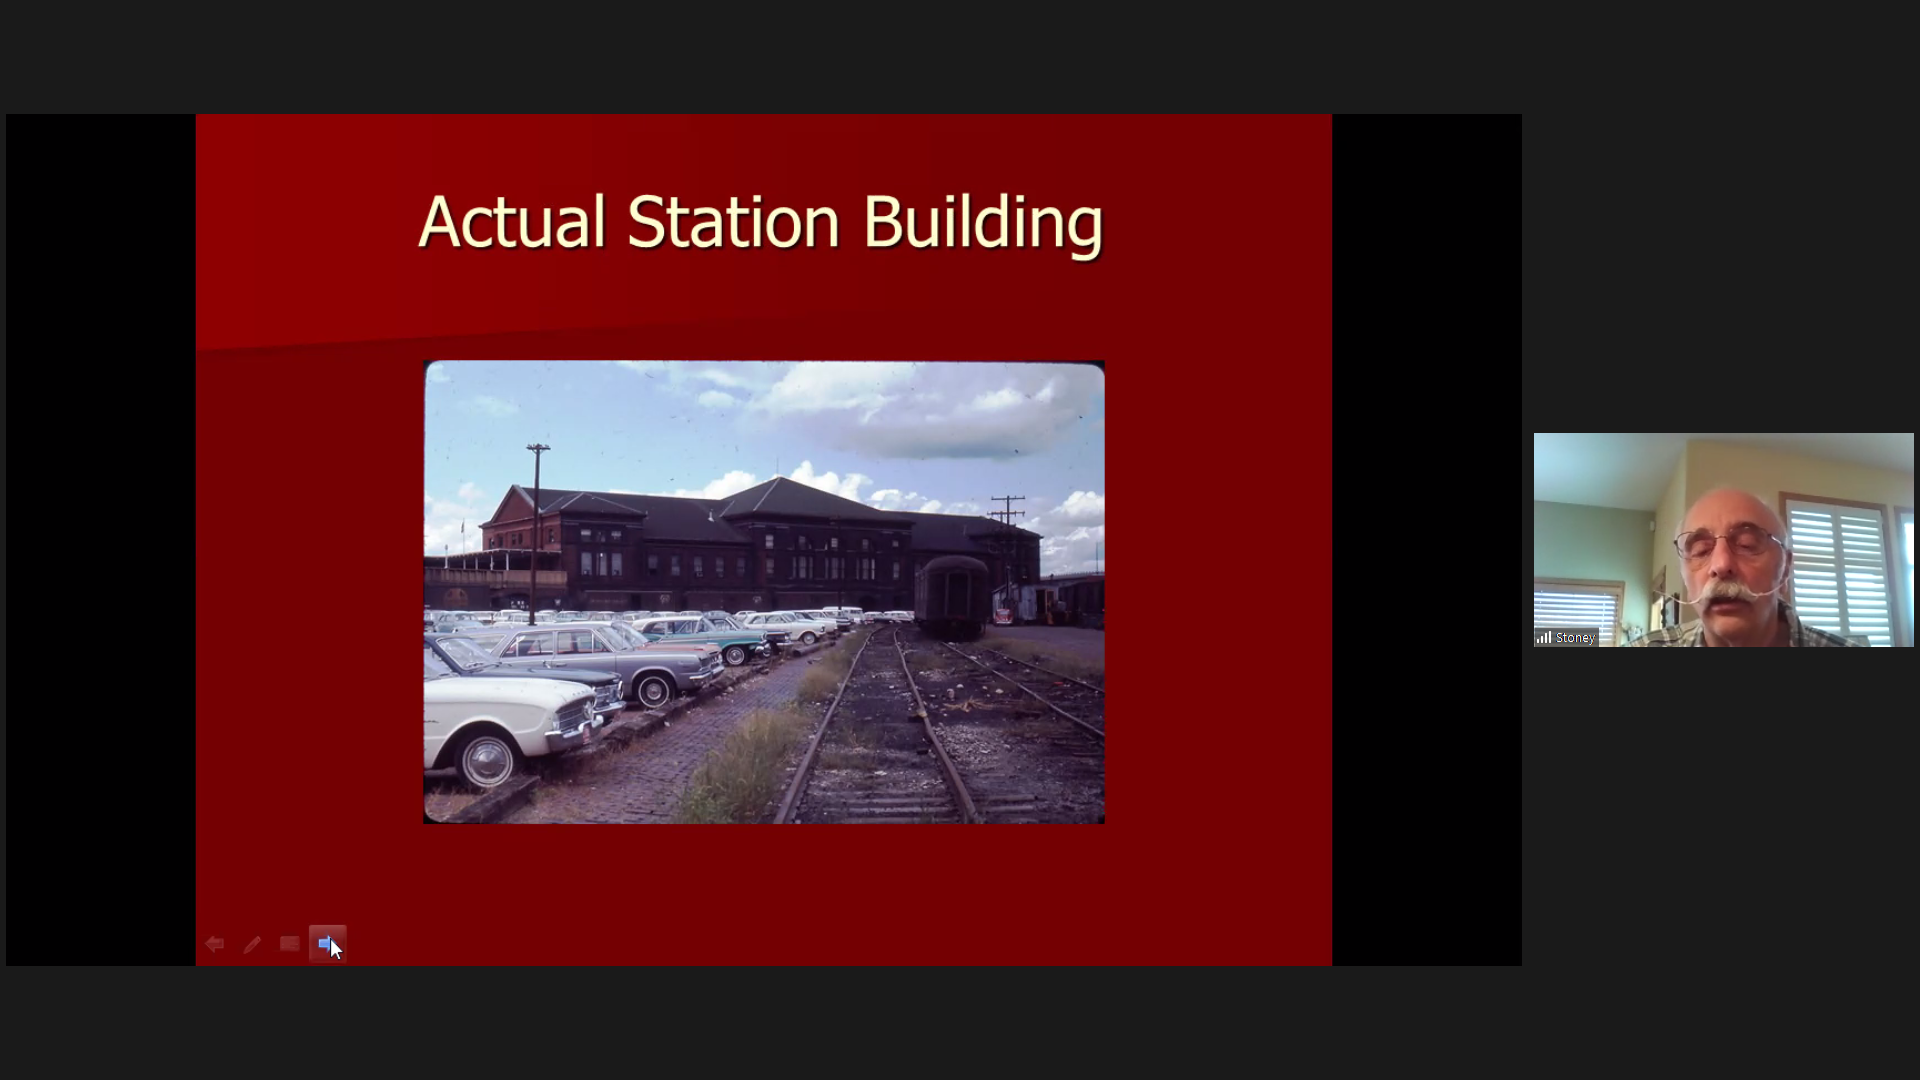 Actual Station Building